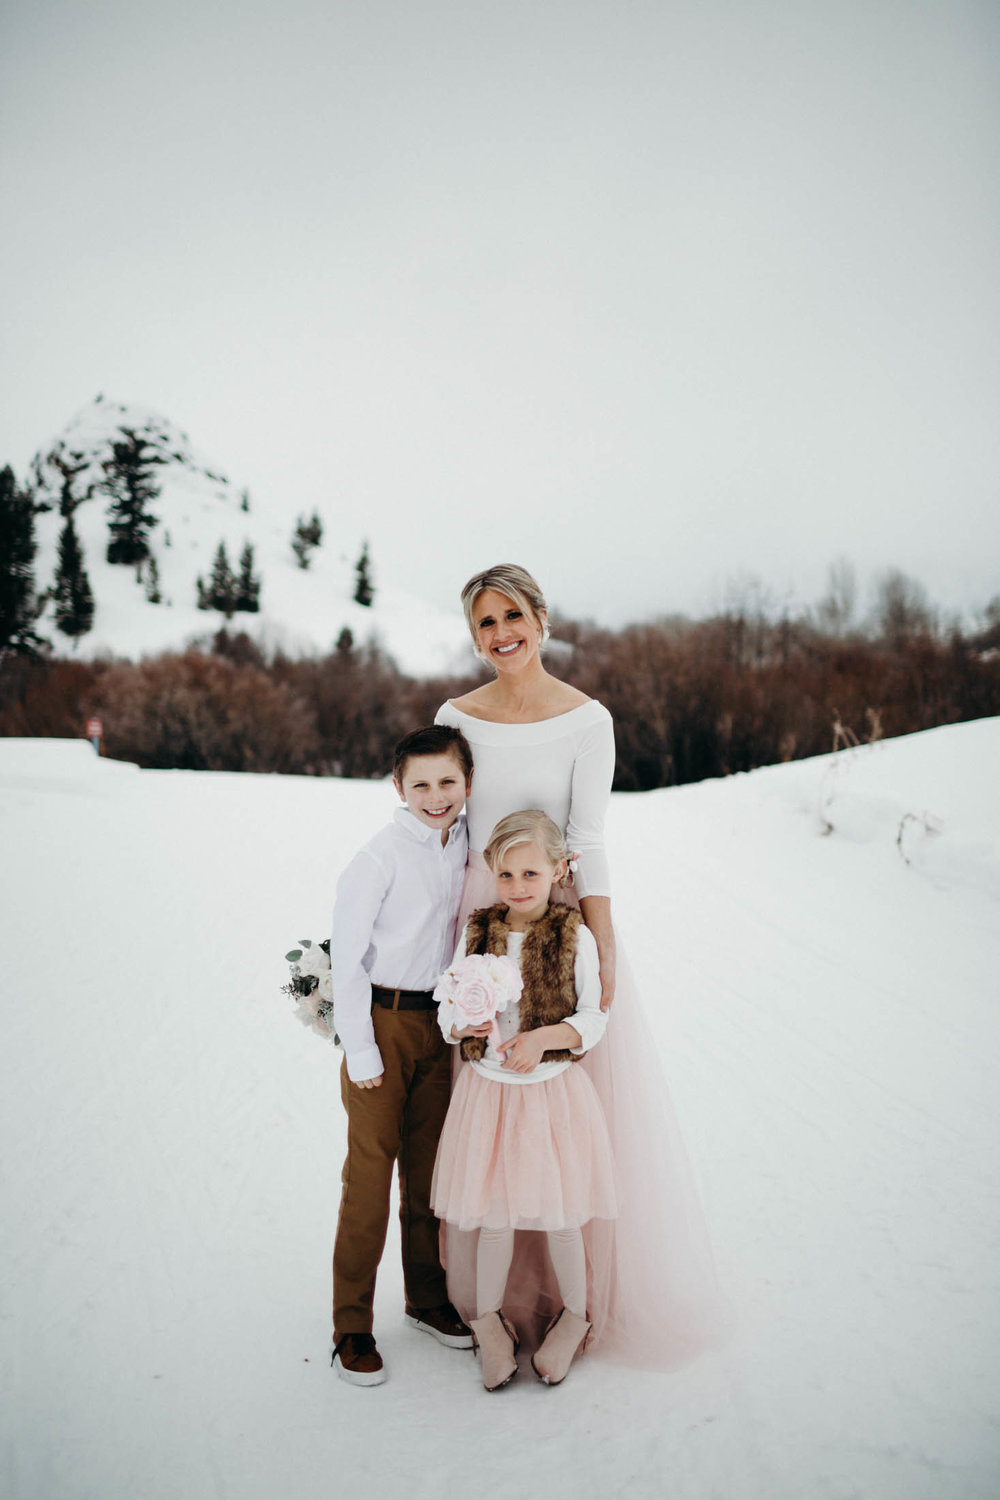 H_J_SunValley_winter_wedding-4.jpg